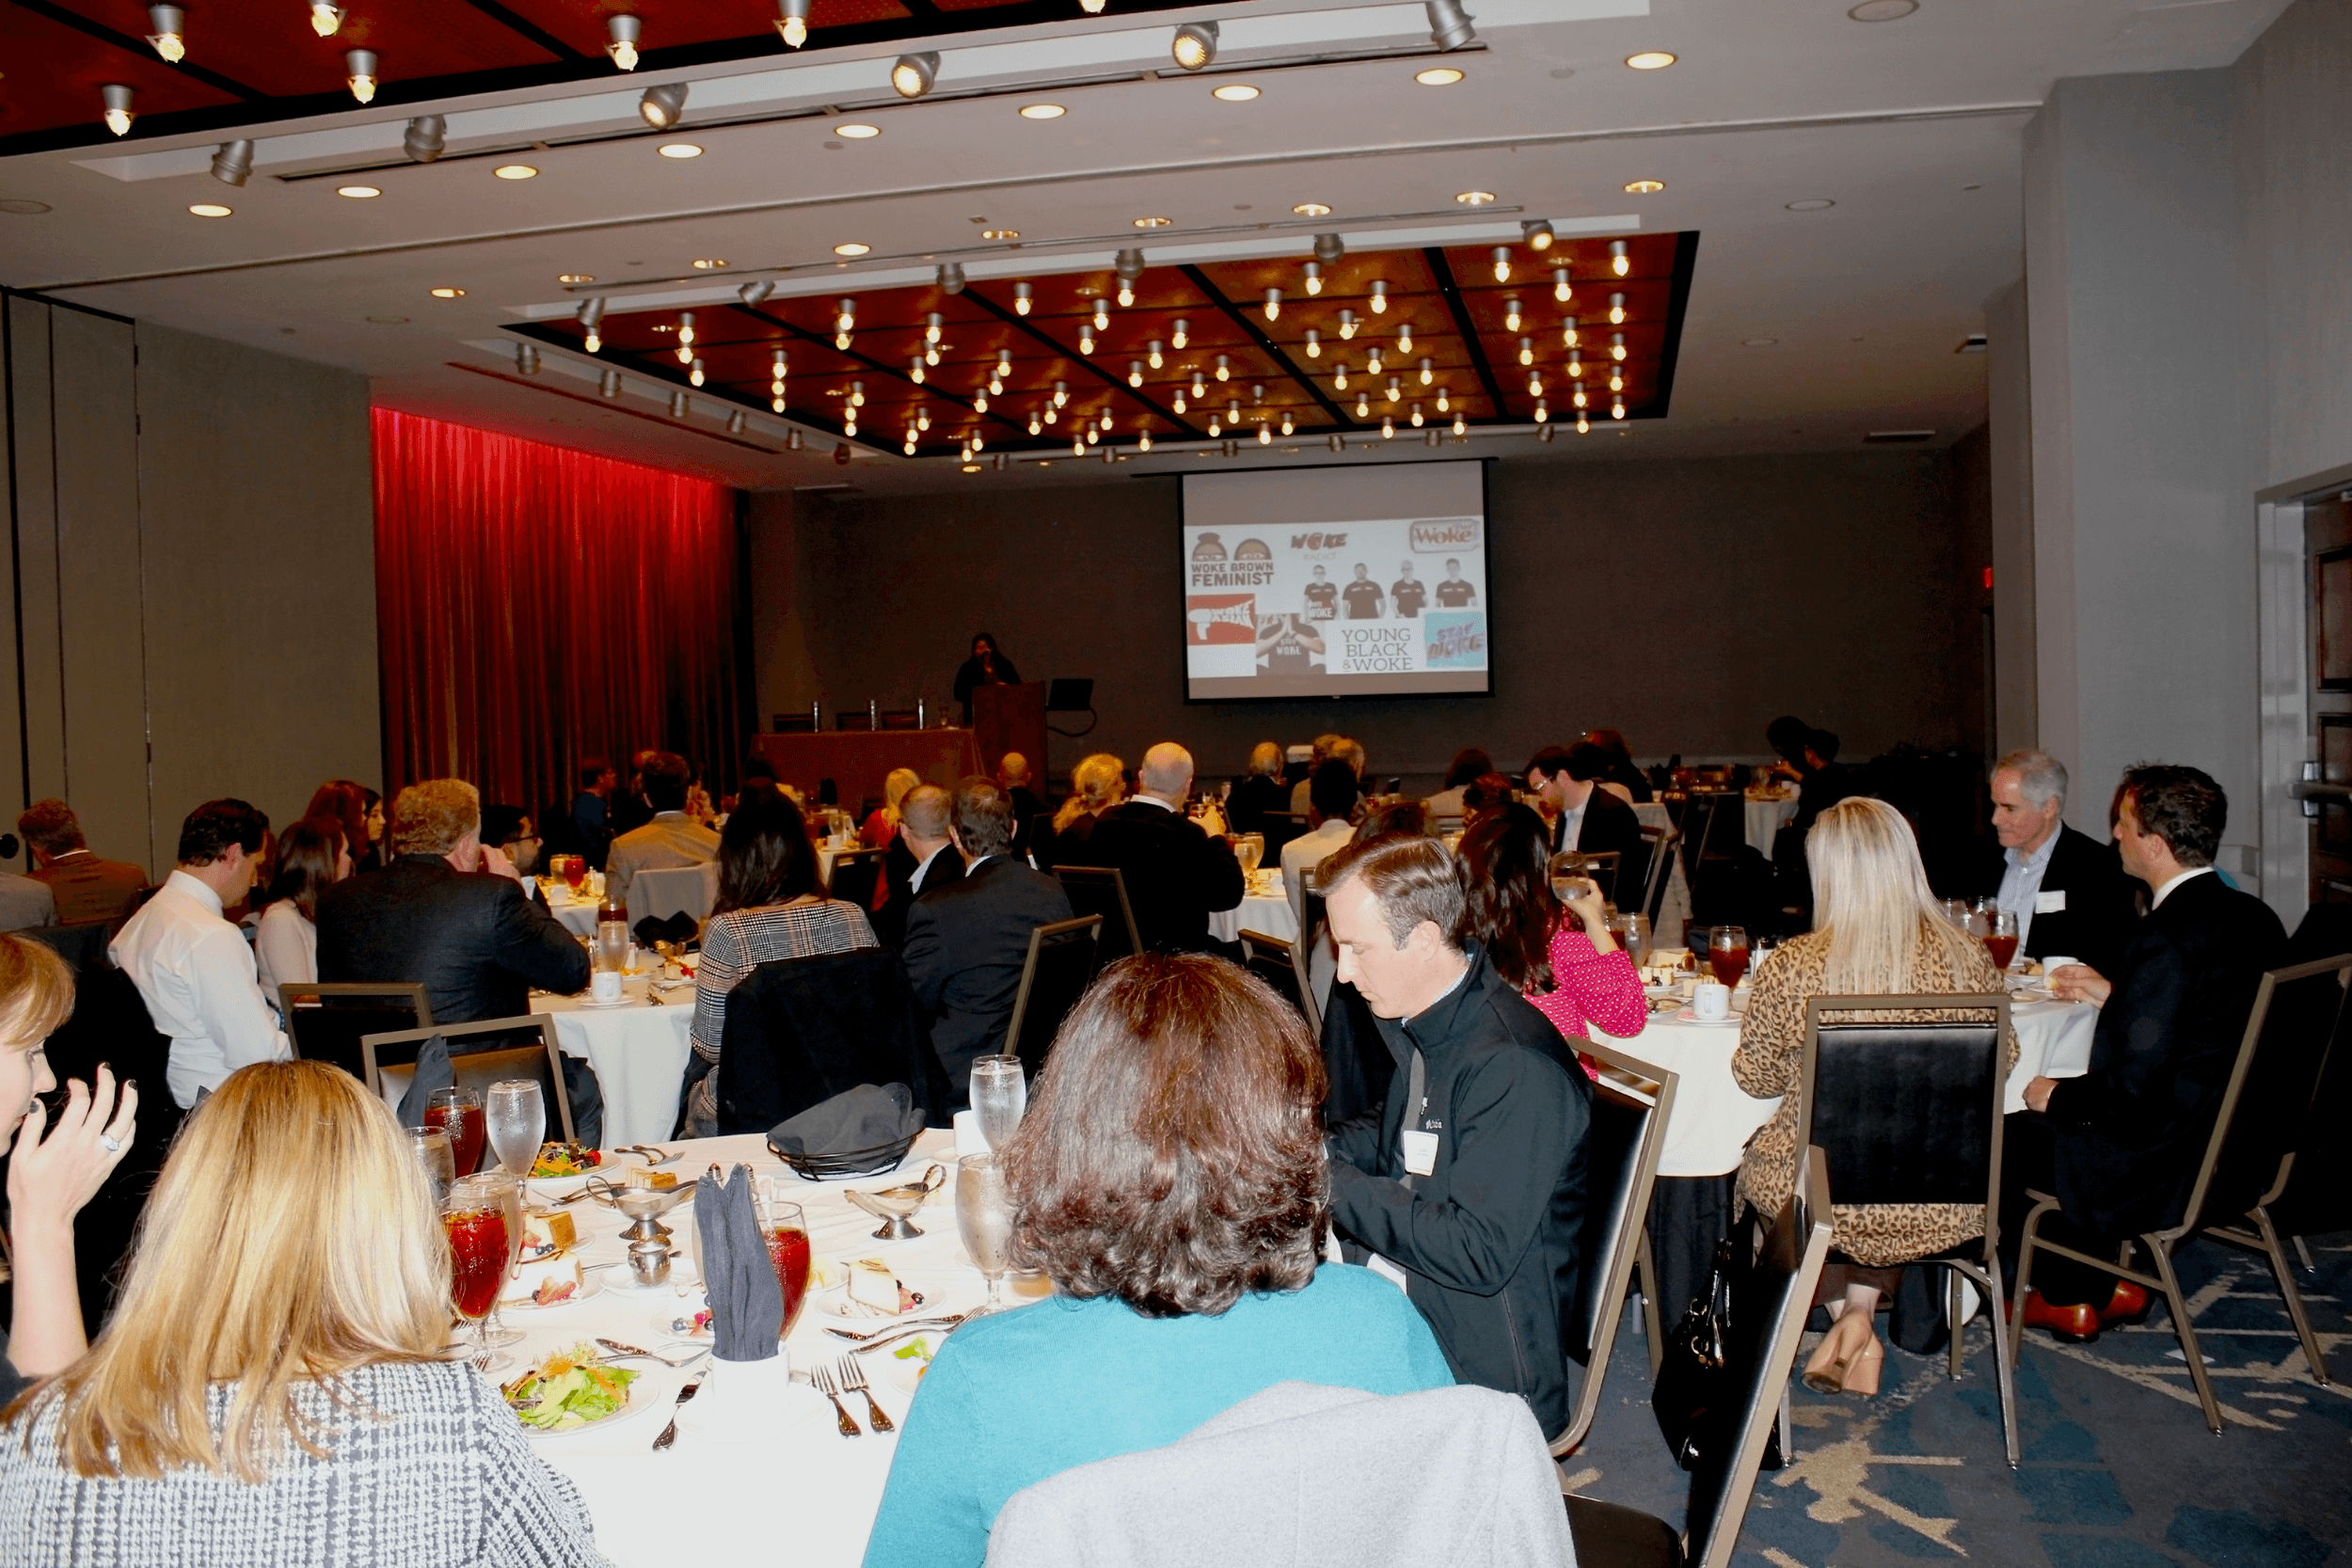 A room full of professionally-dressed adults sit at round tables and face the front, away from the viewer. They are watching a woman at a podium speak with a PowerPoint slide projected beside her.